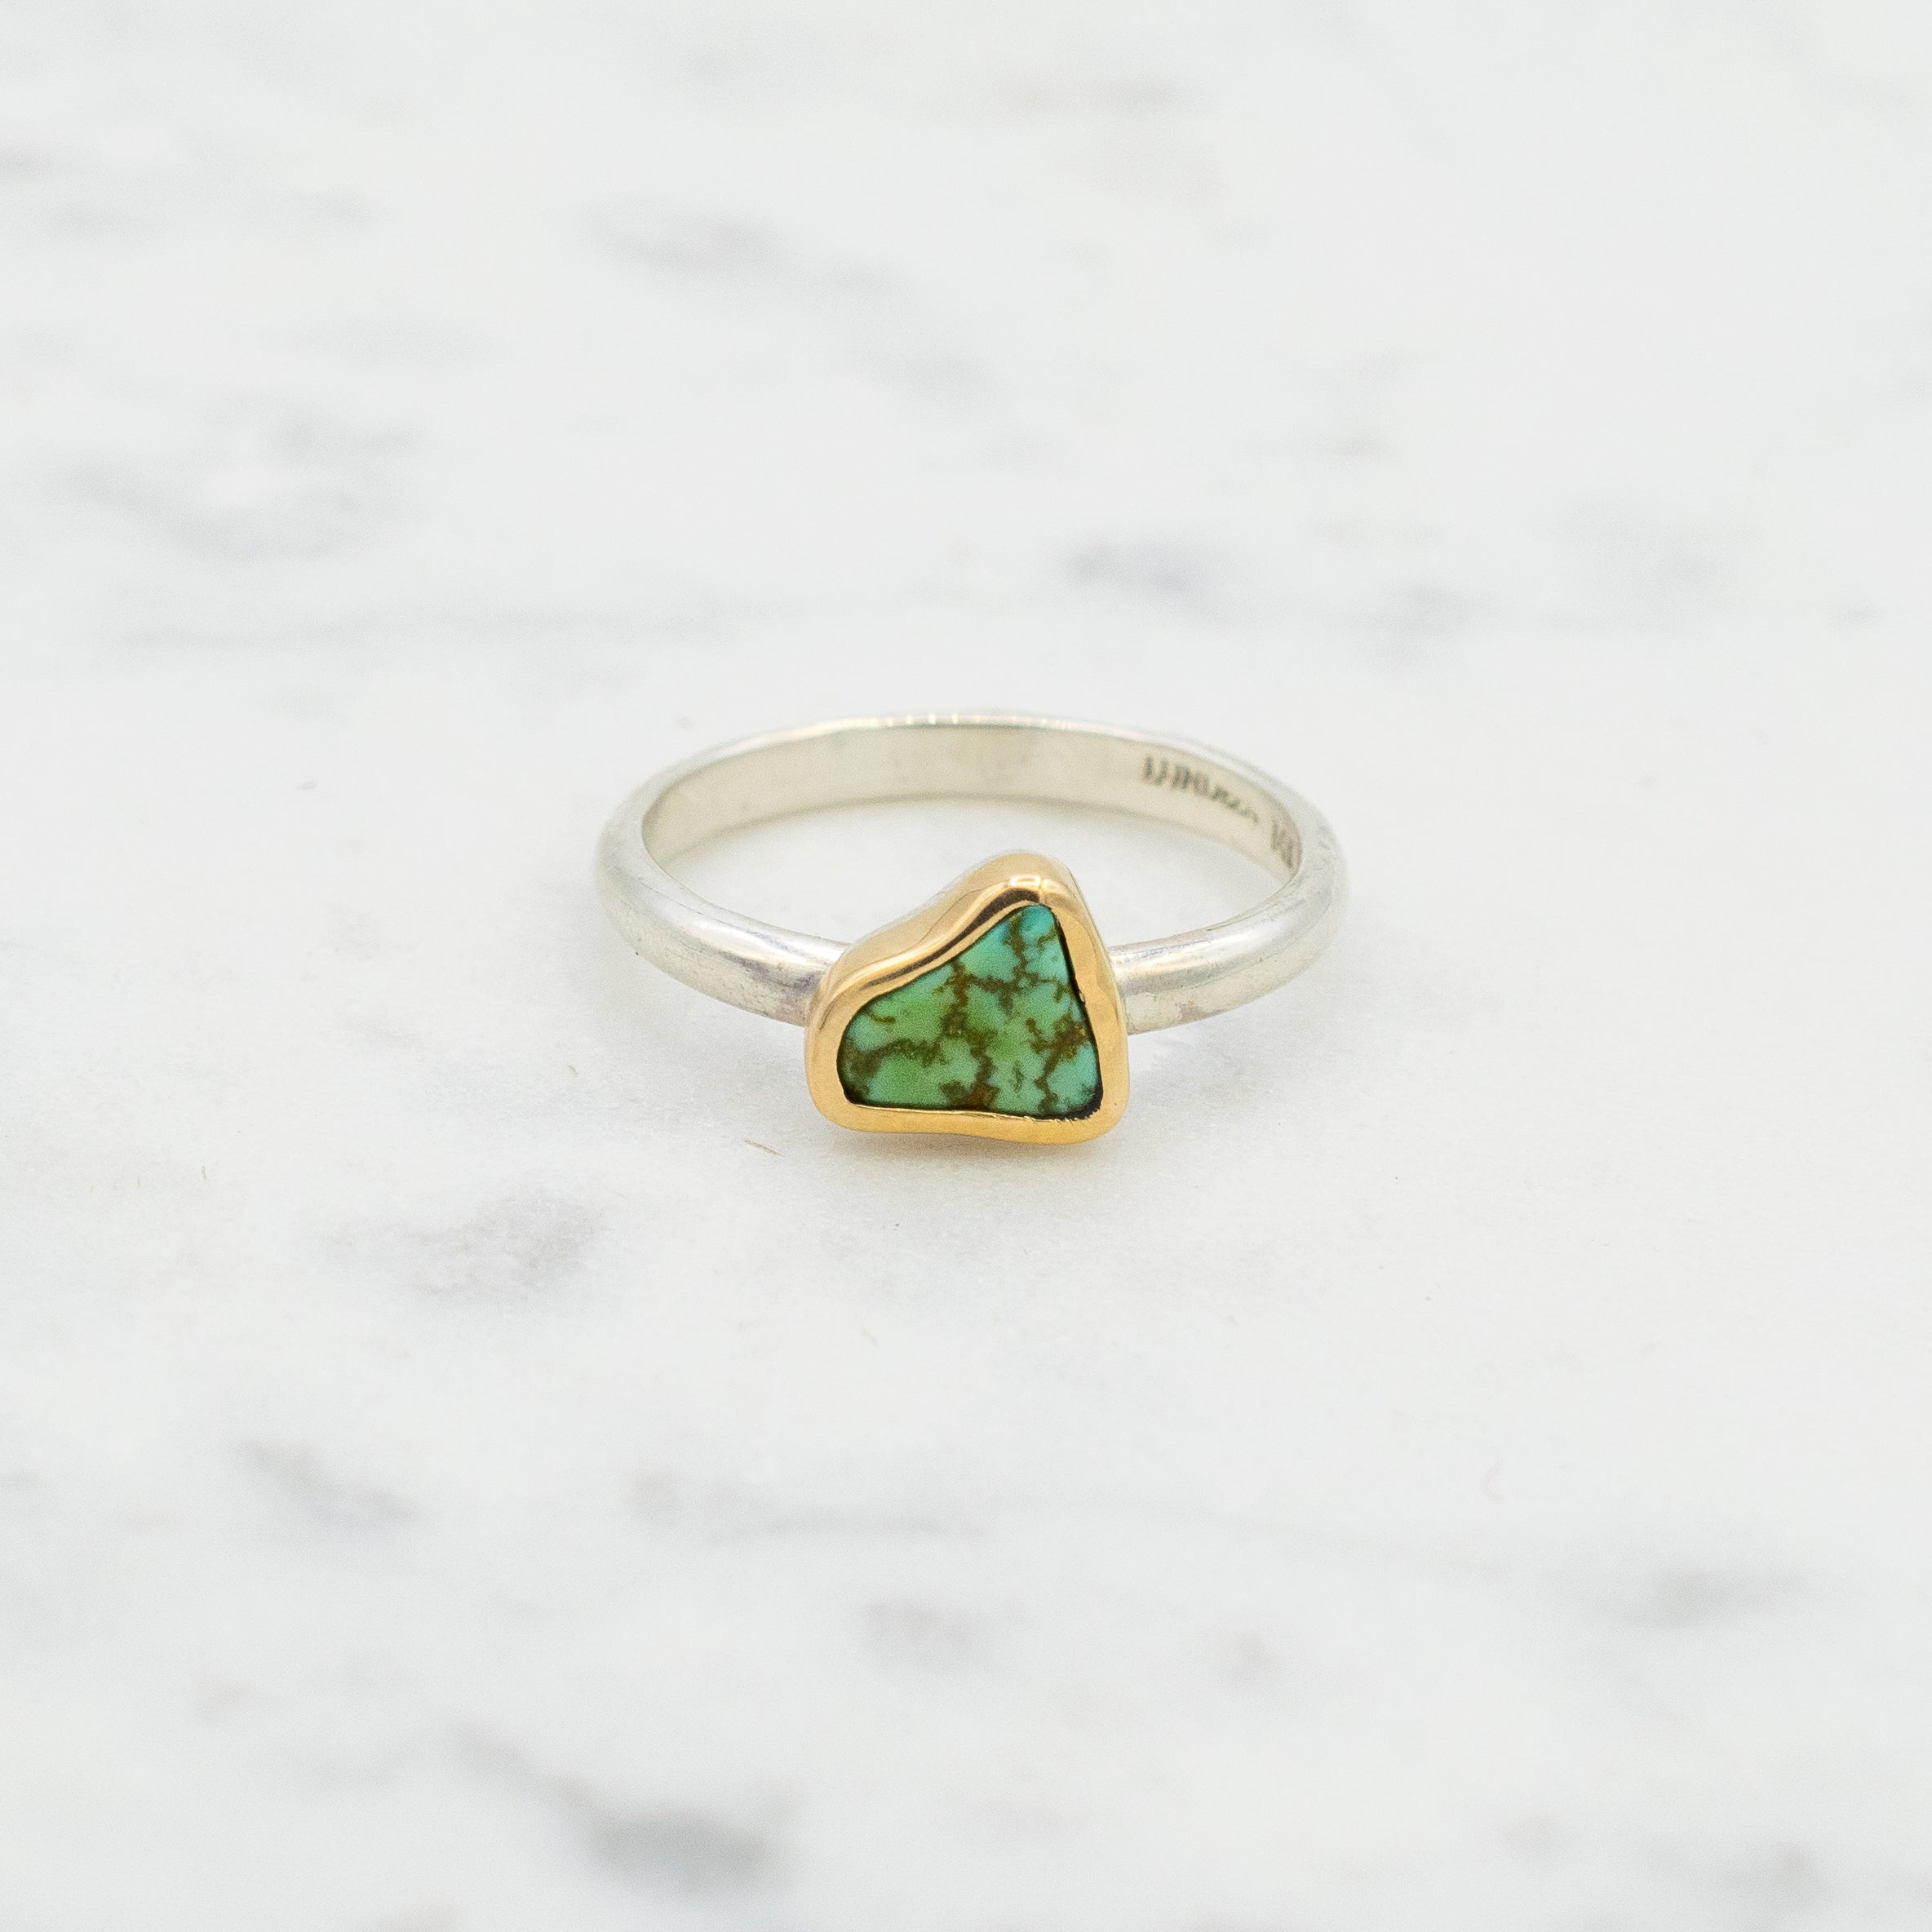 Turquoise, 14k yellow gold and sterling silver ring